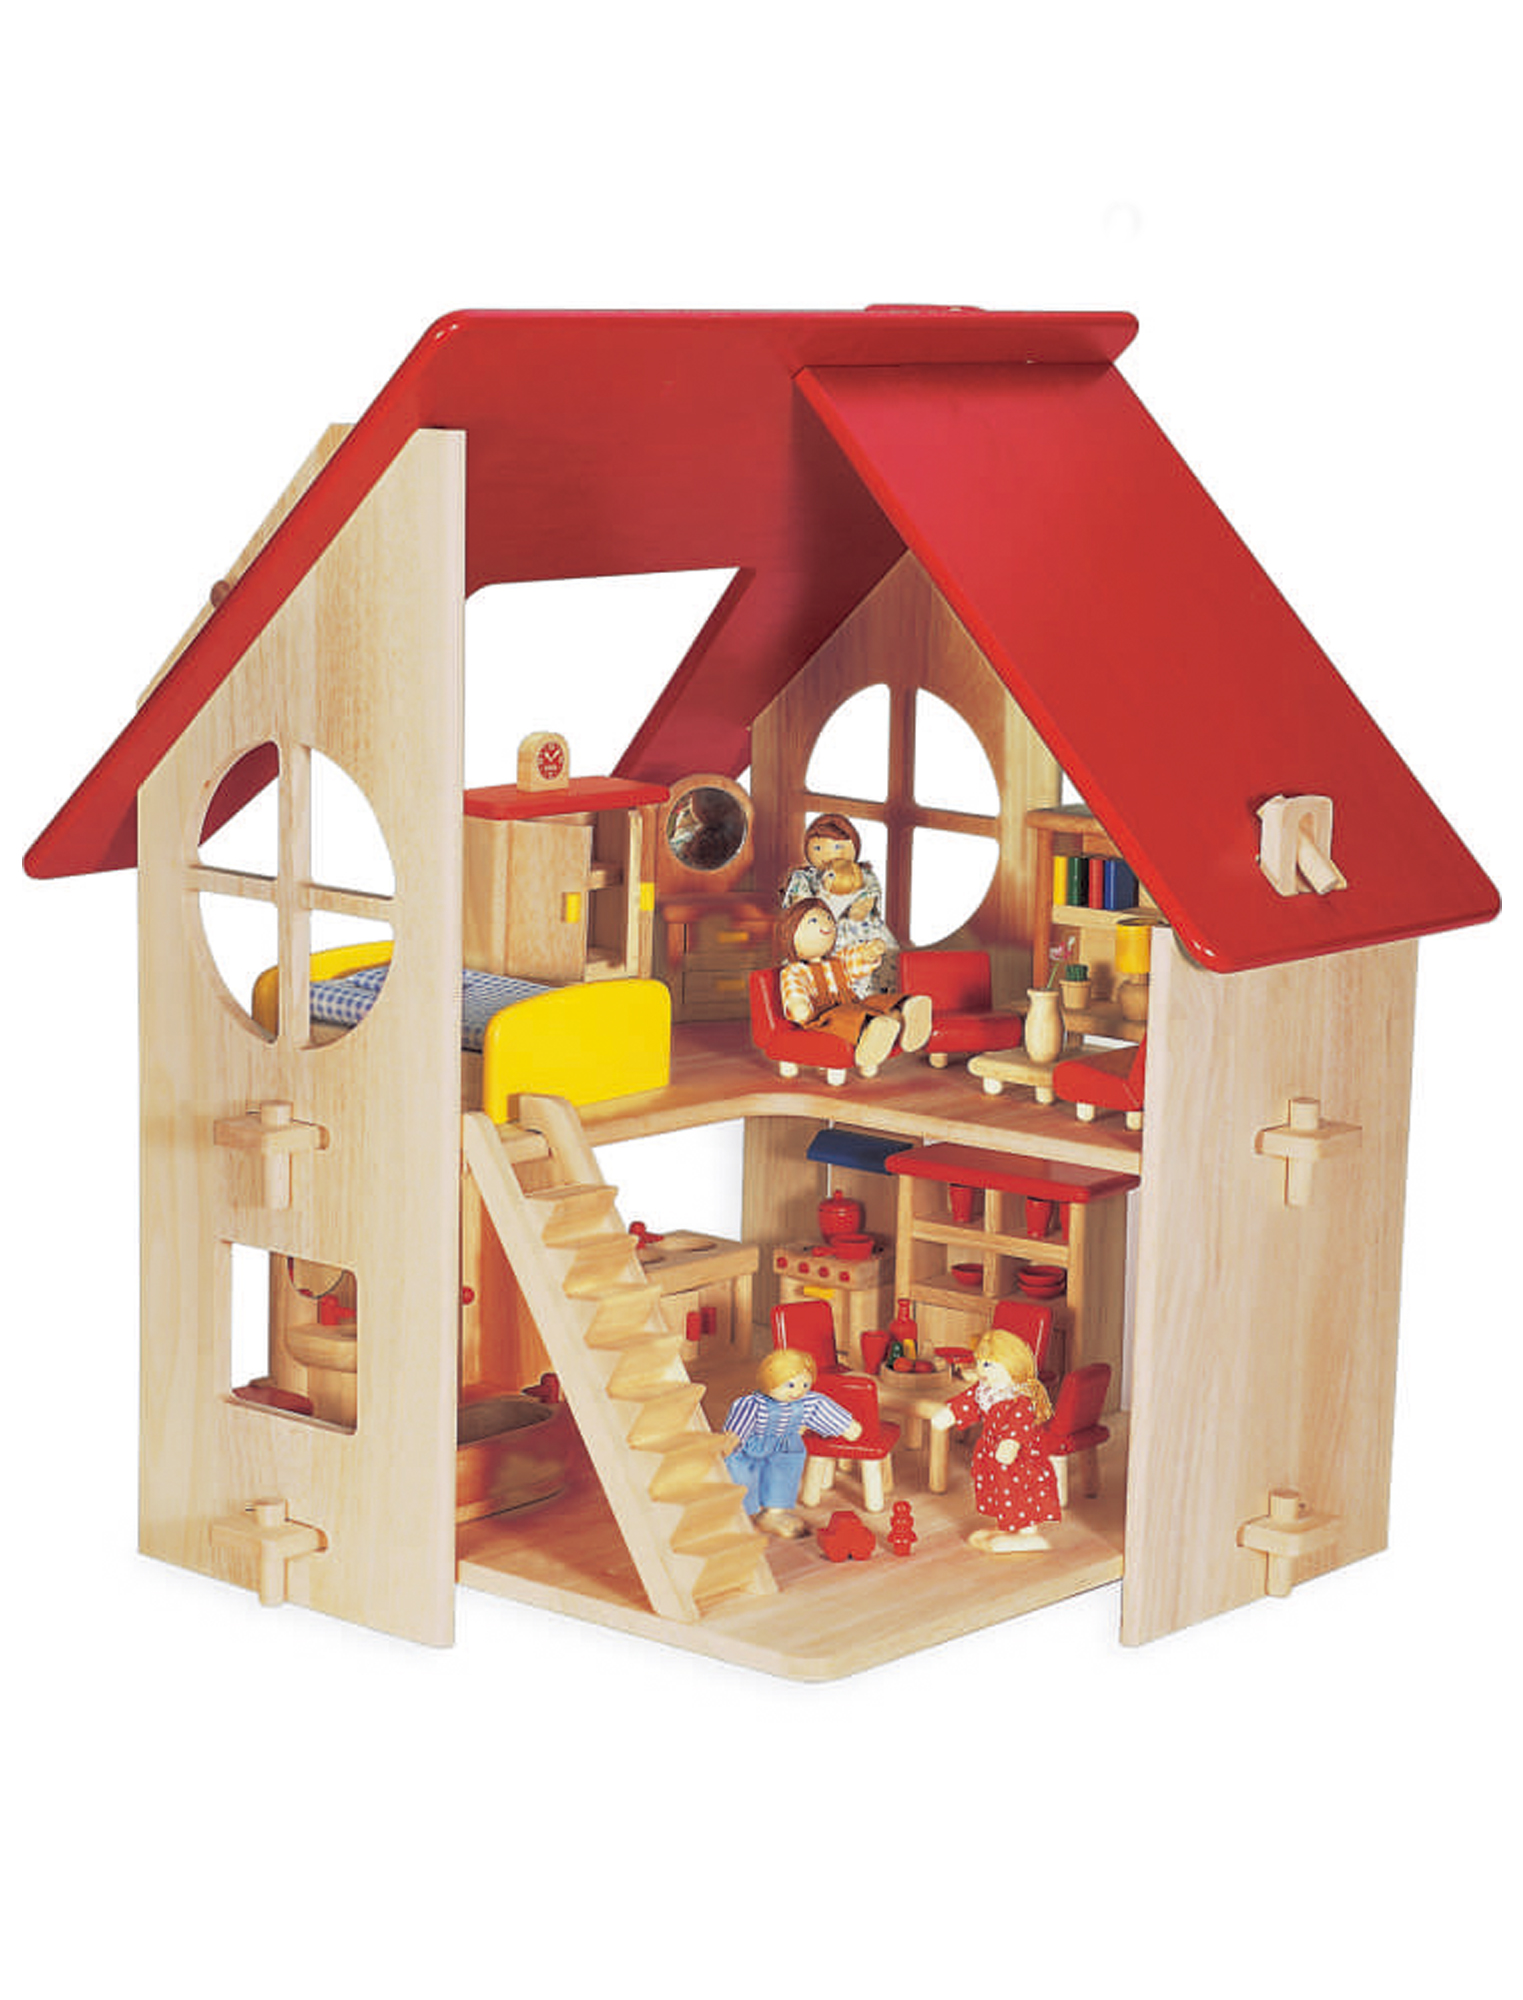 Dolls & Doll Houses | Goldfish ToyShop